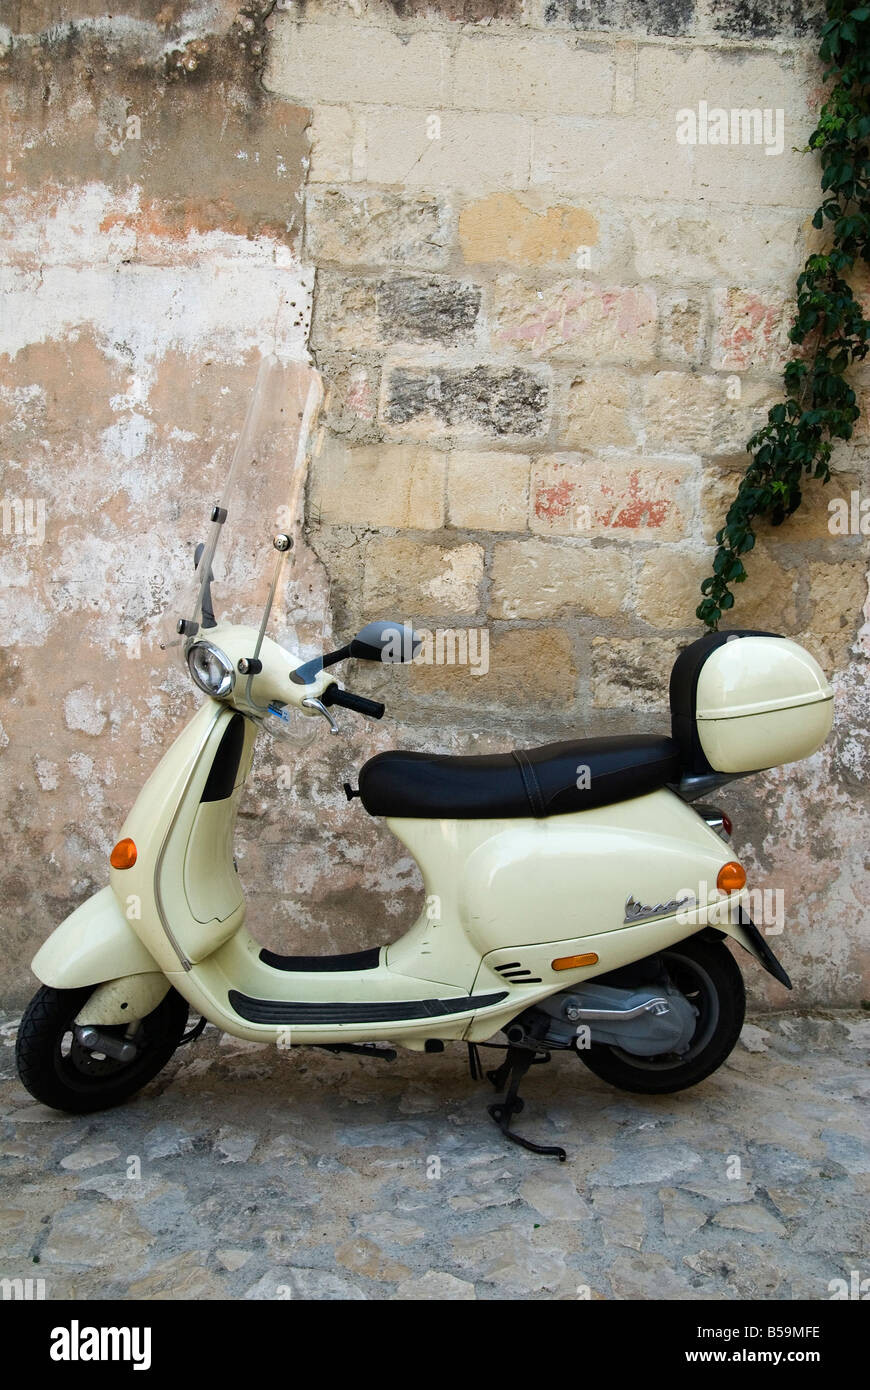 A retro styled Piaggio Vespa scooter parked in front of a weathered wall on a cobbled road in Matera, Basilicata, - Stock Image